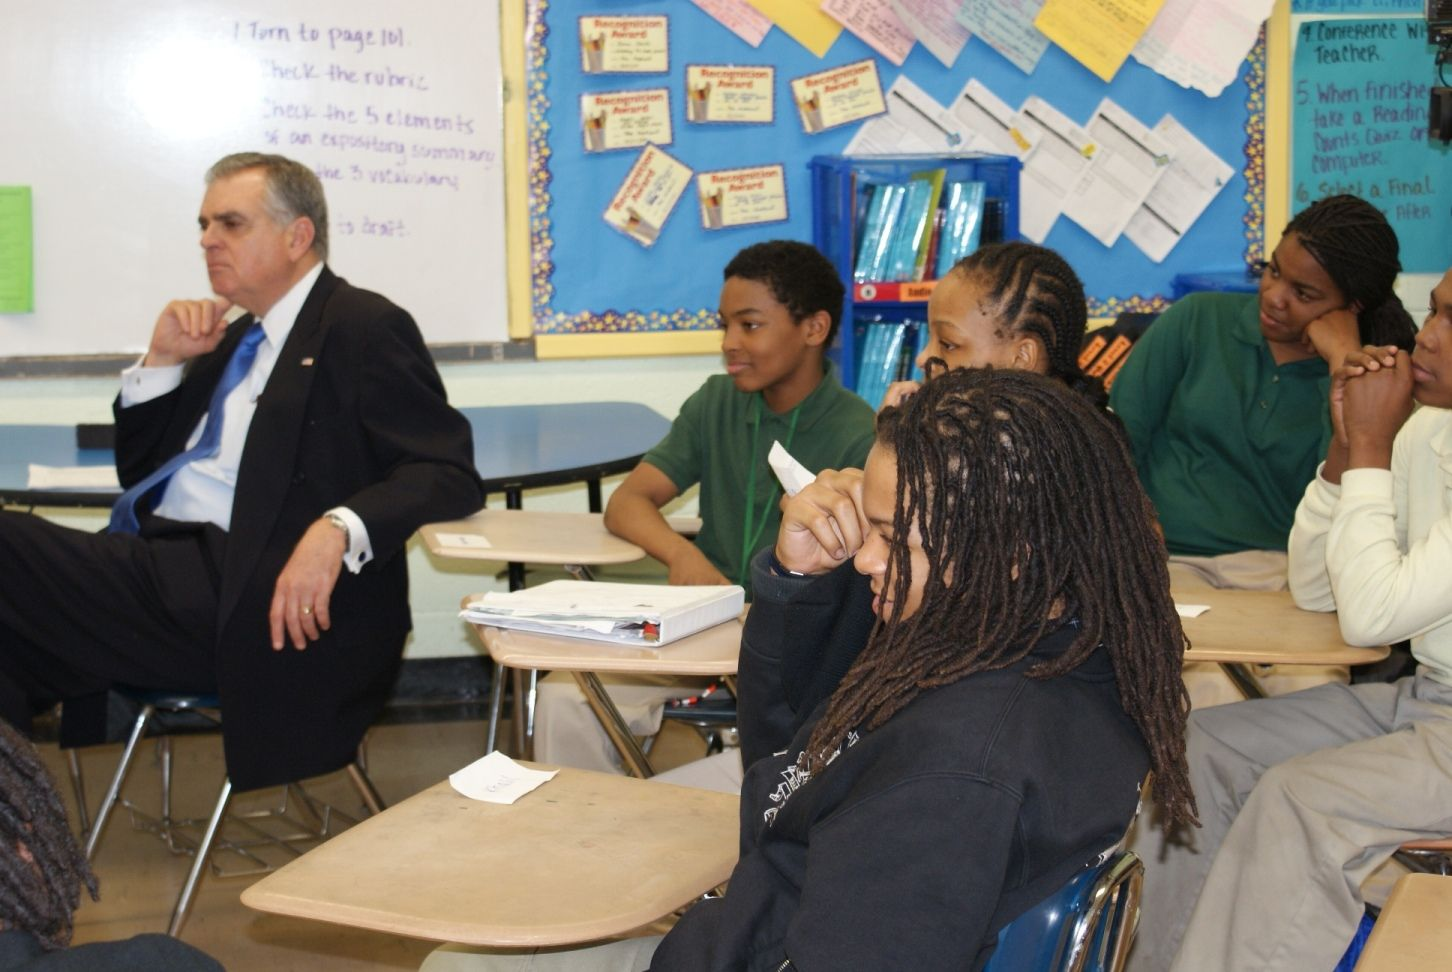 Secretary LaHood Takes Part in Teach For America Week: Listening